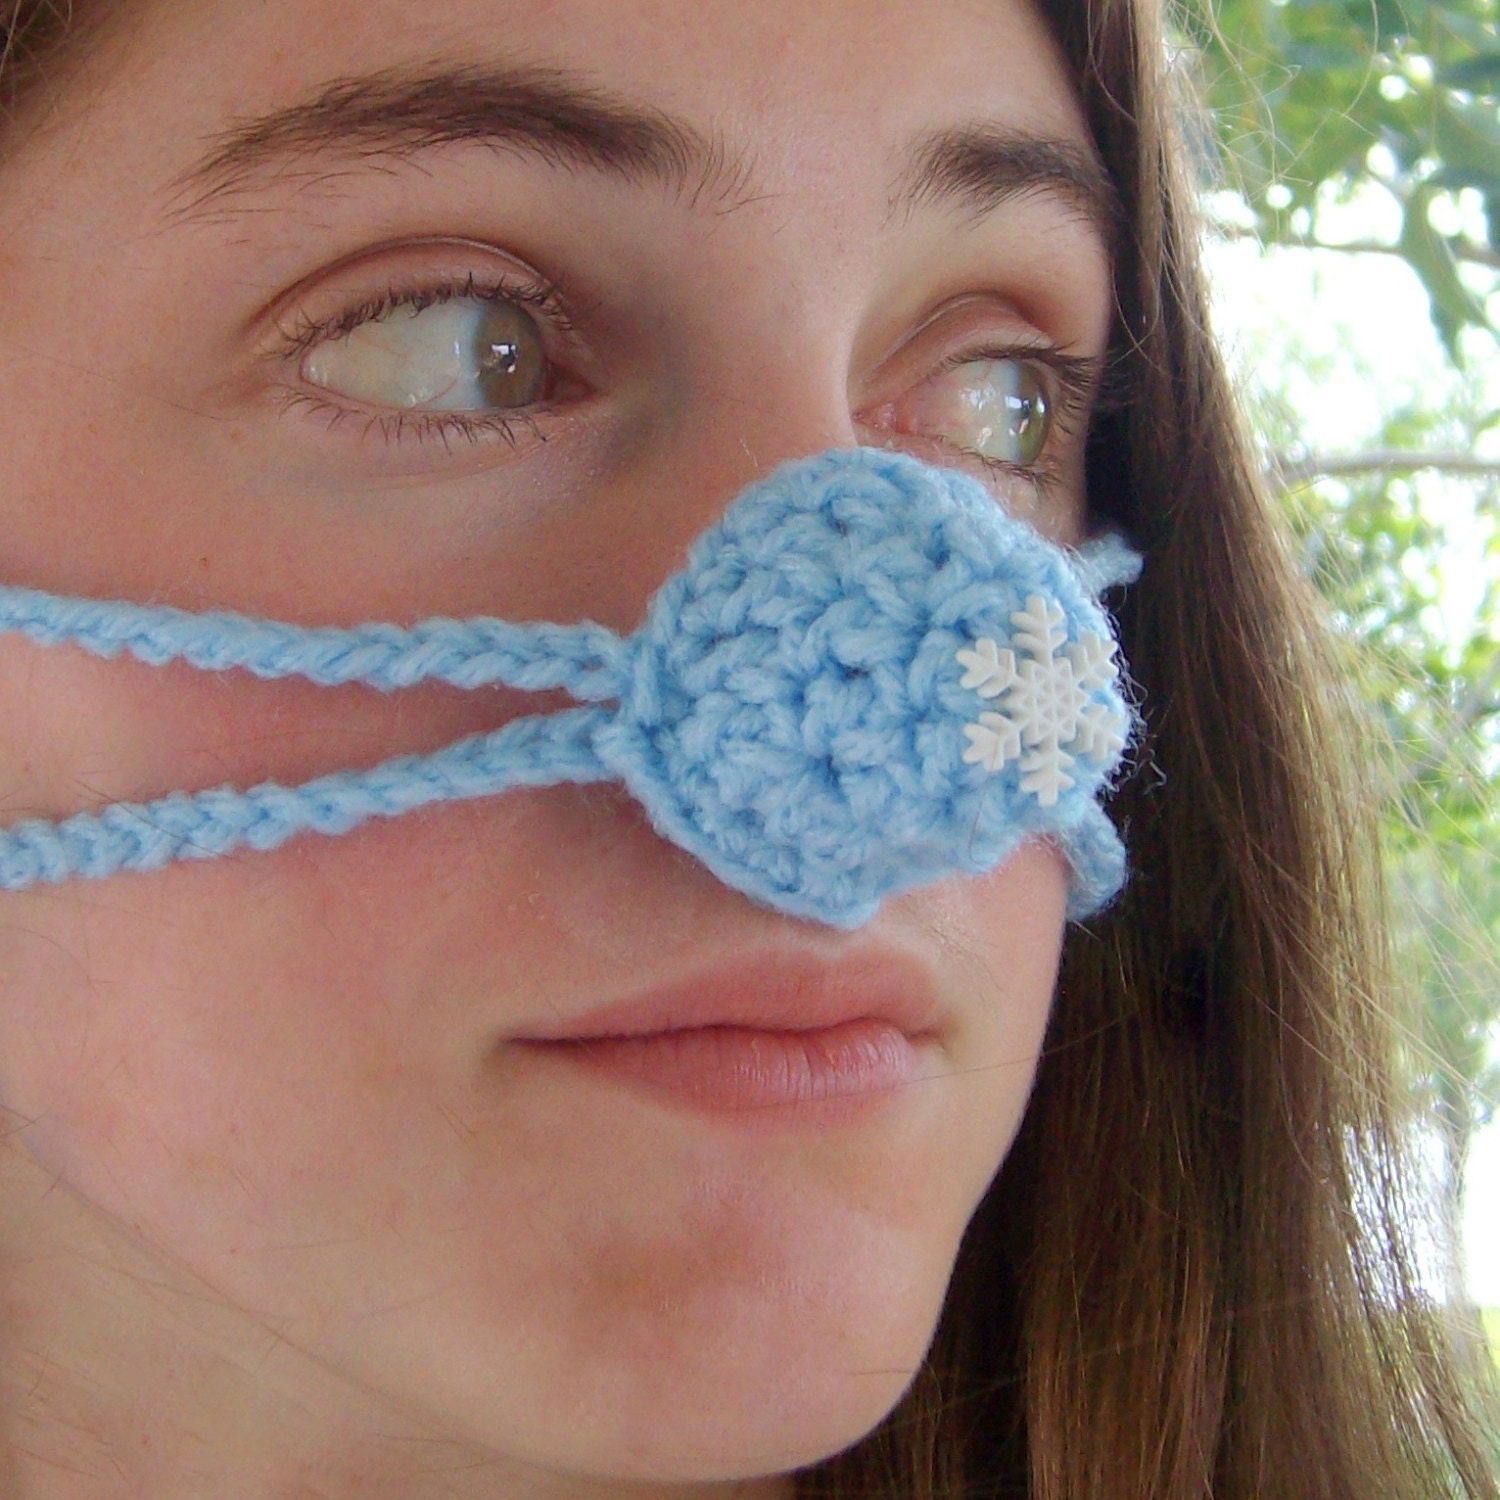 Crochet Nose Warmer : Snowflake Nose Warmer Nose Cozy Crochet Frozen by auntmartymadeit